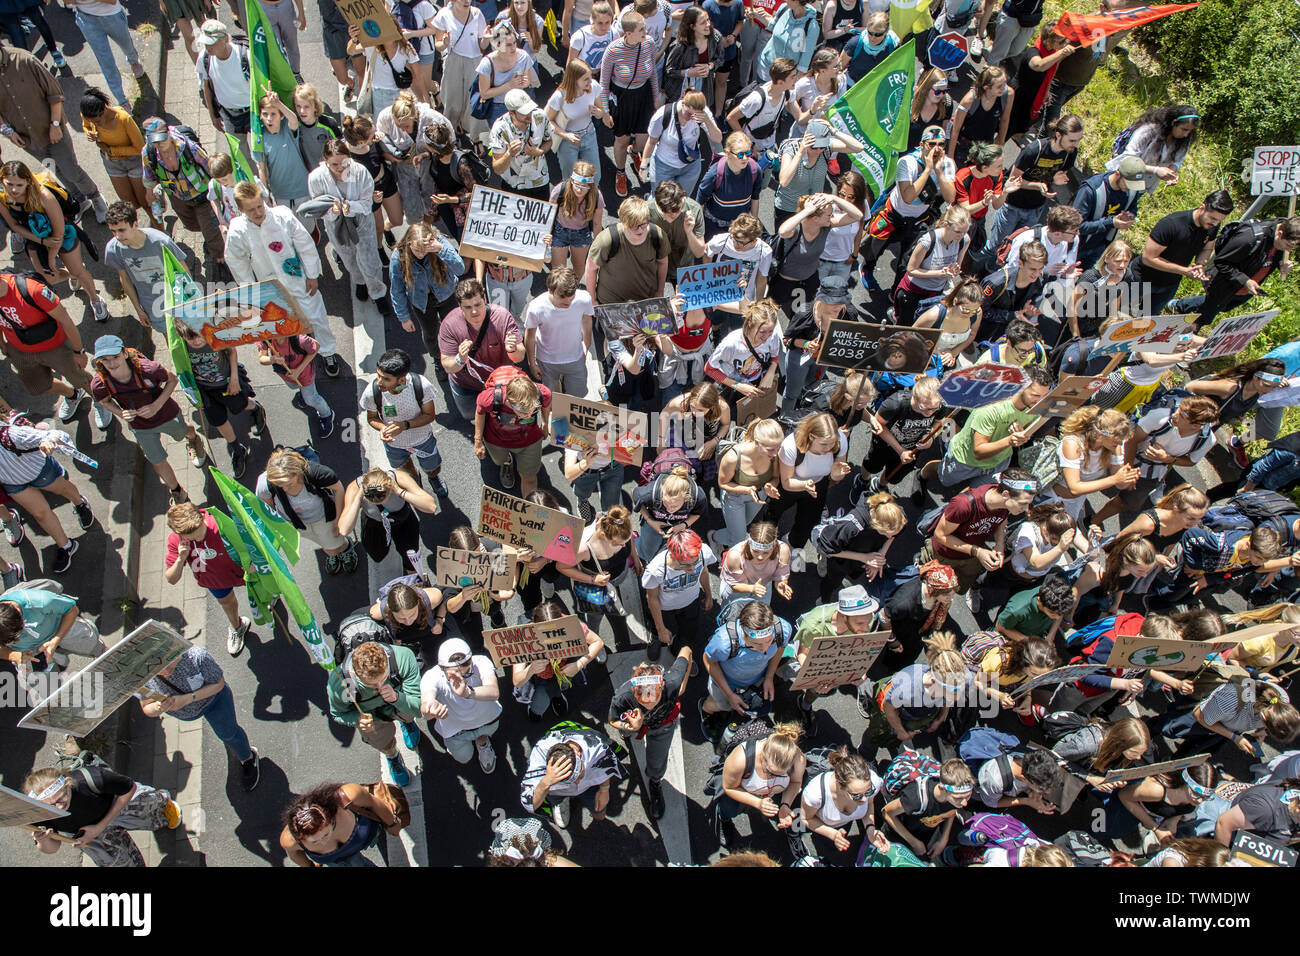 First international climate protection demonstration, climate strike, the movement Fridays for Future, in Aachen, with tens of thousands of participan Stock Photo